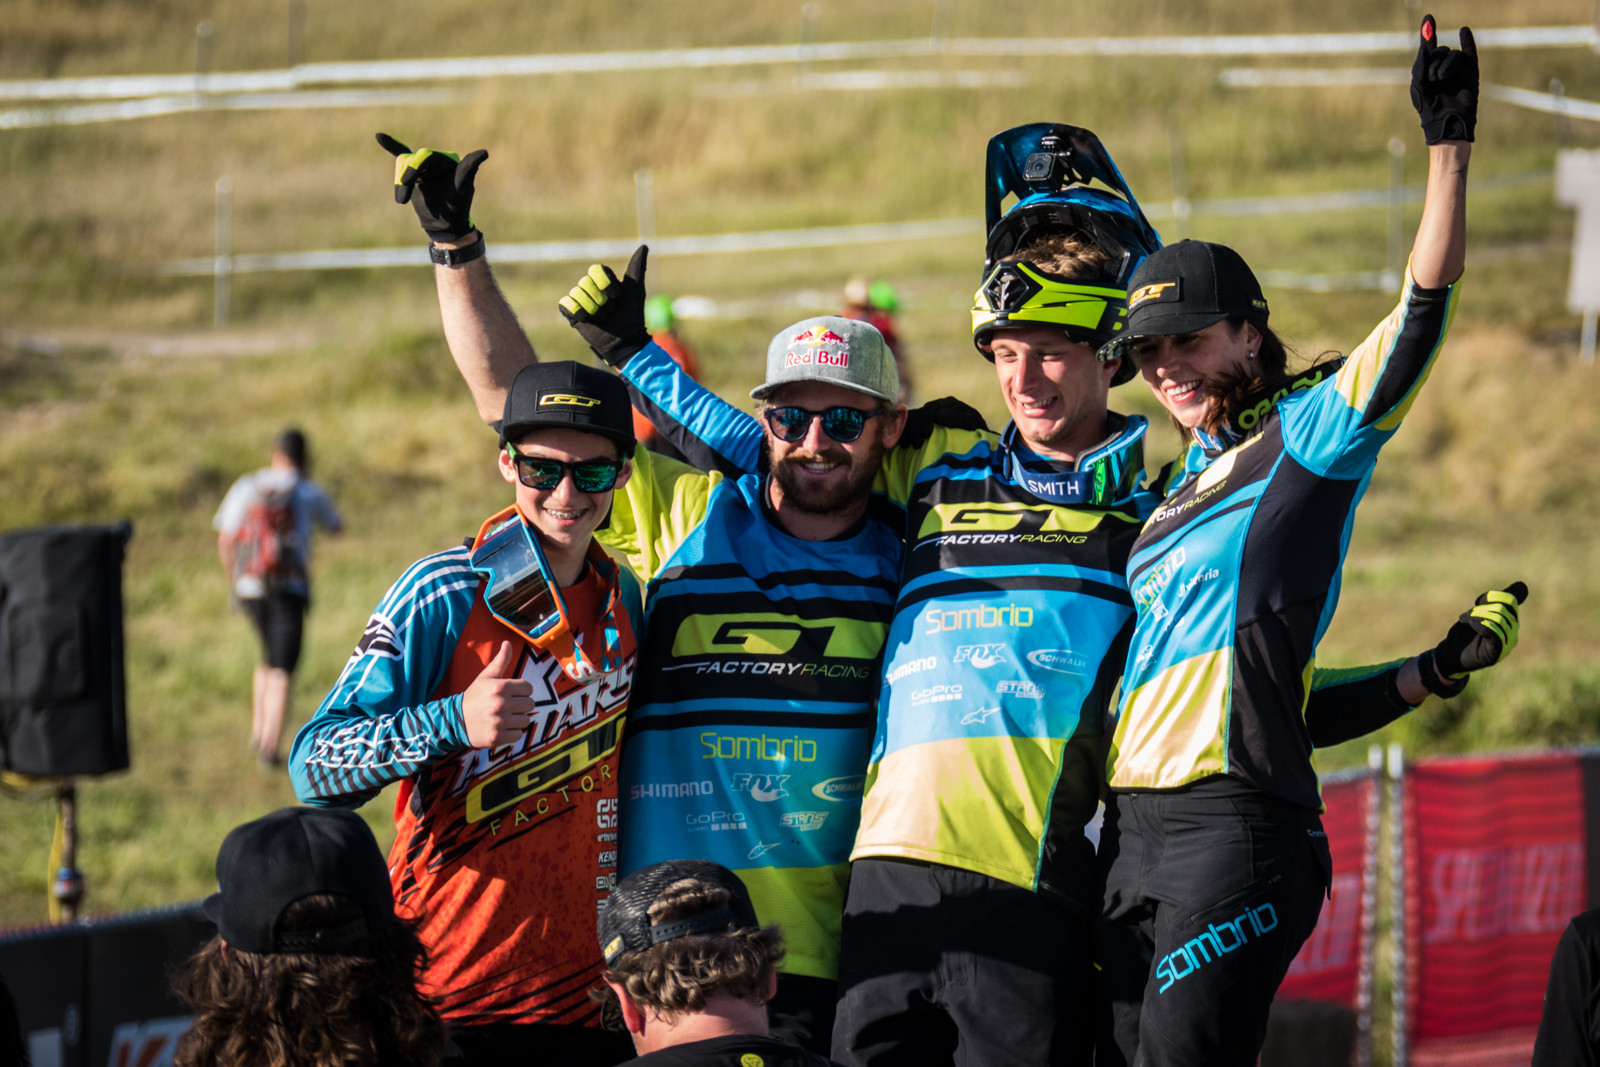 GT Had a Good Day - WINNING BIKE - Martin Maes' GT Distortion - Mountain Biking Pictures - Vital MTB